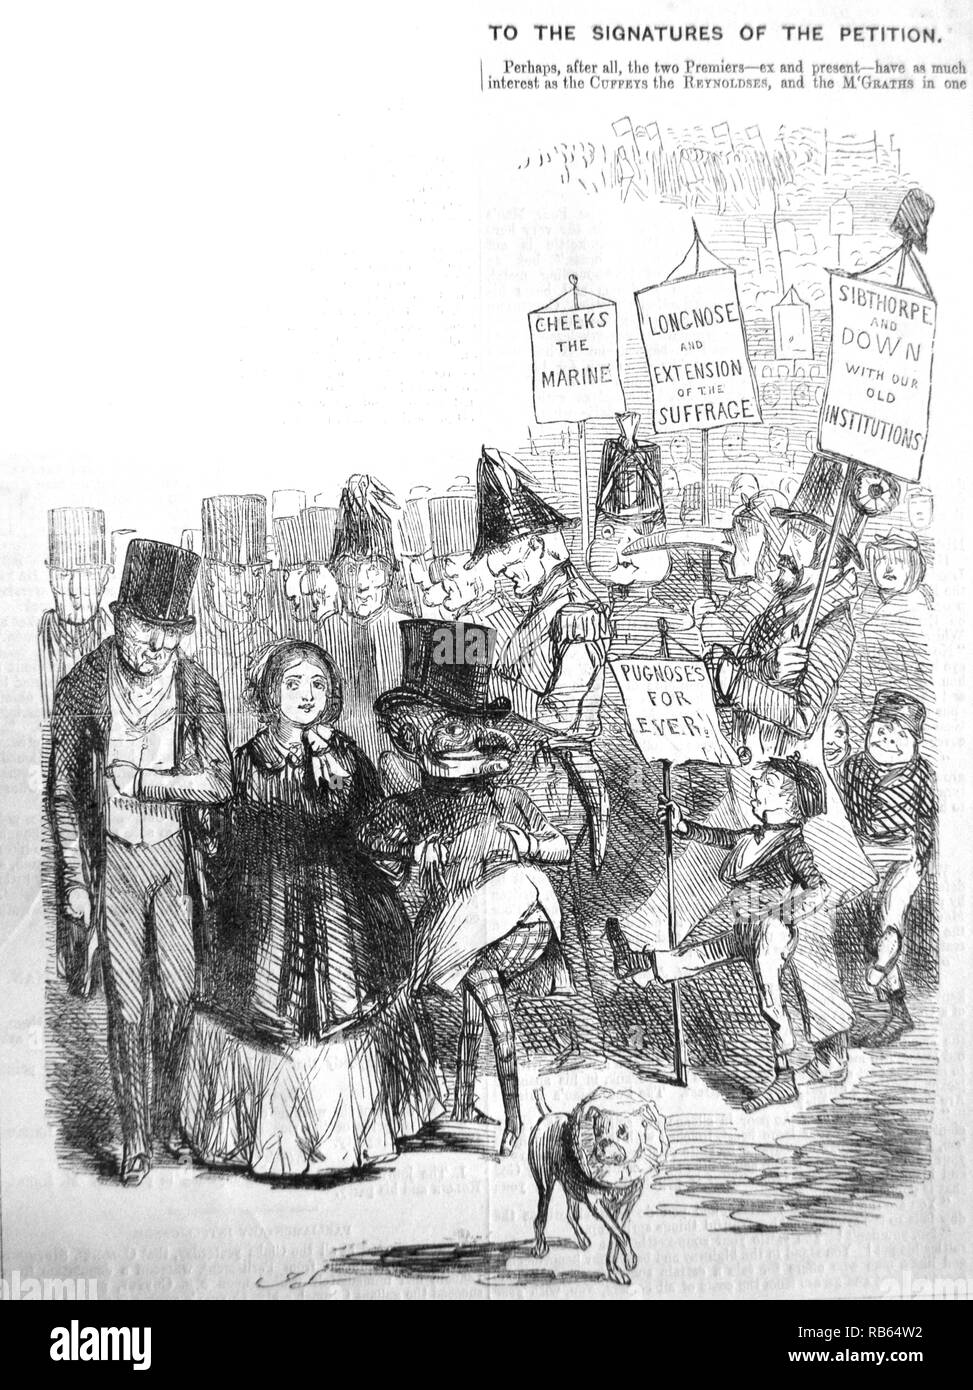 Chartism: How the Chartist procession might have looked, with Mr Punch, Queen Victoria and the Duke of Wellington, followed by other eminent citzens. John Leech Cartoon from ''Punch'', London, 1848. - Stock Image